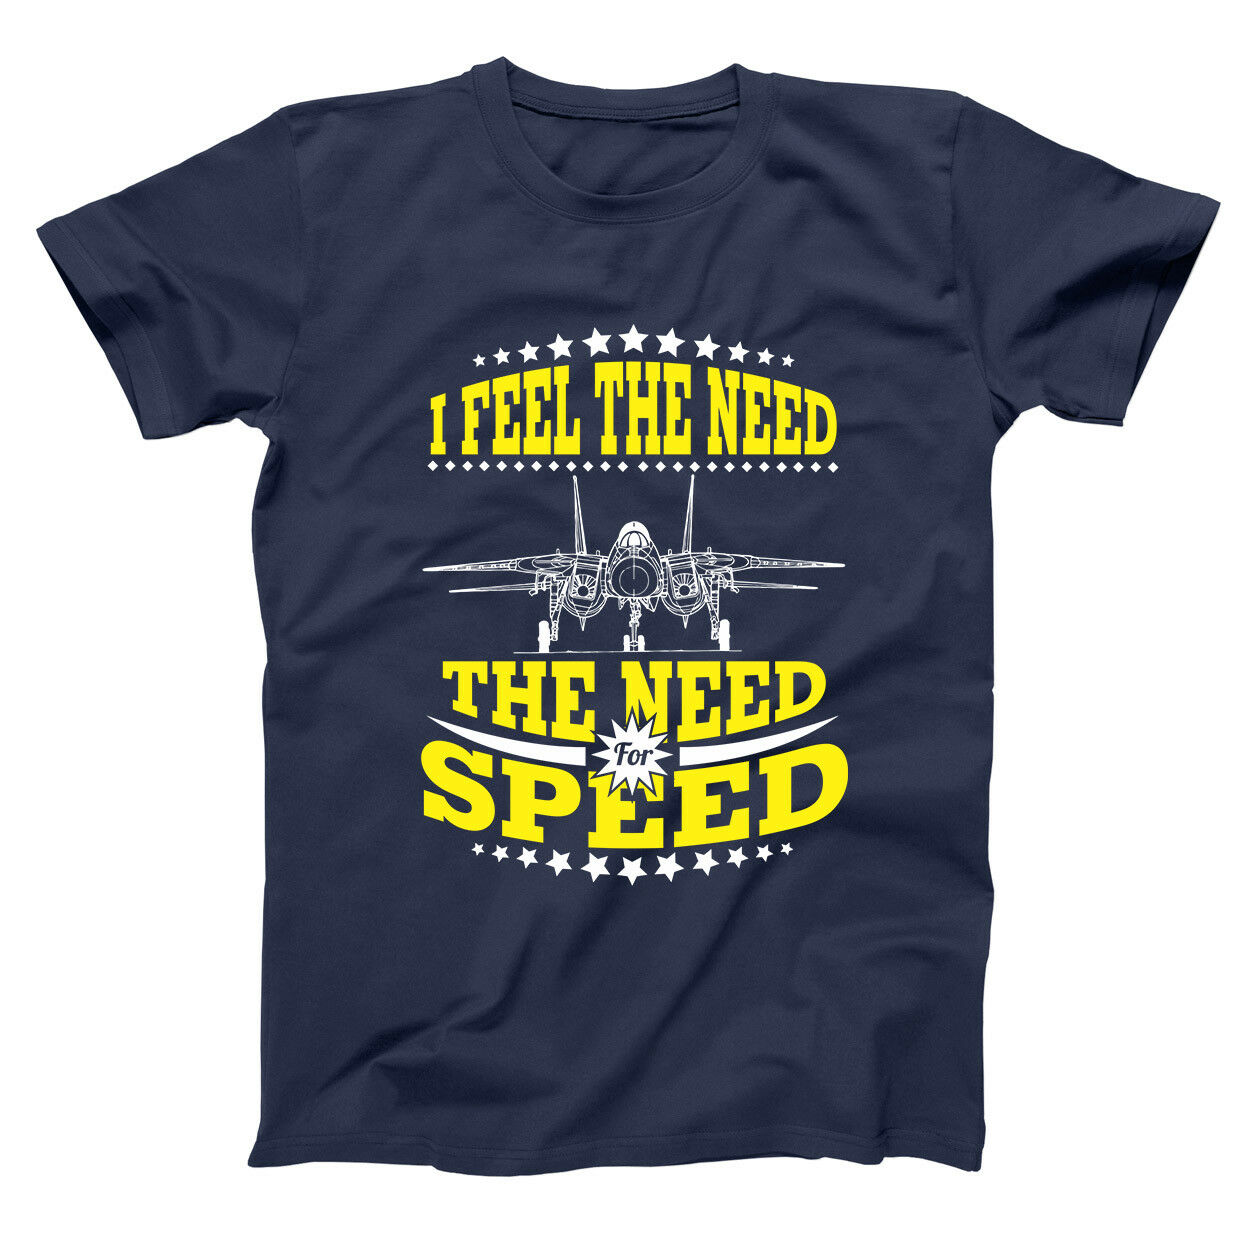 2019 Fashion Need For Speed Top Gun Volleyball F14 Navy Movie Navy Basic Men'S T-Shirt Unisex Tee image